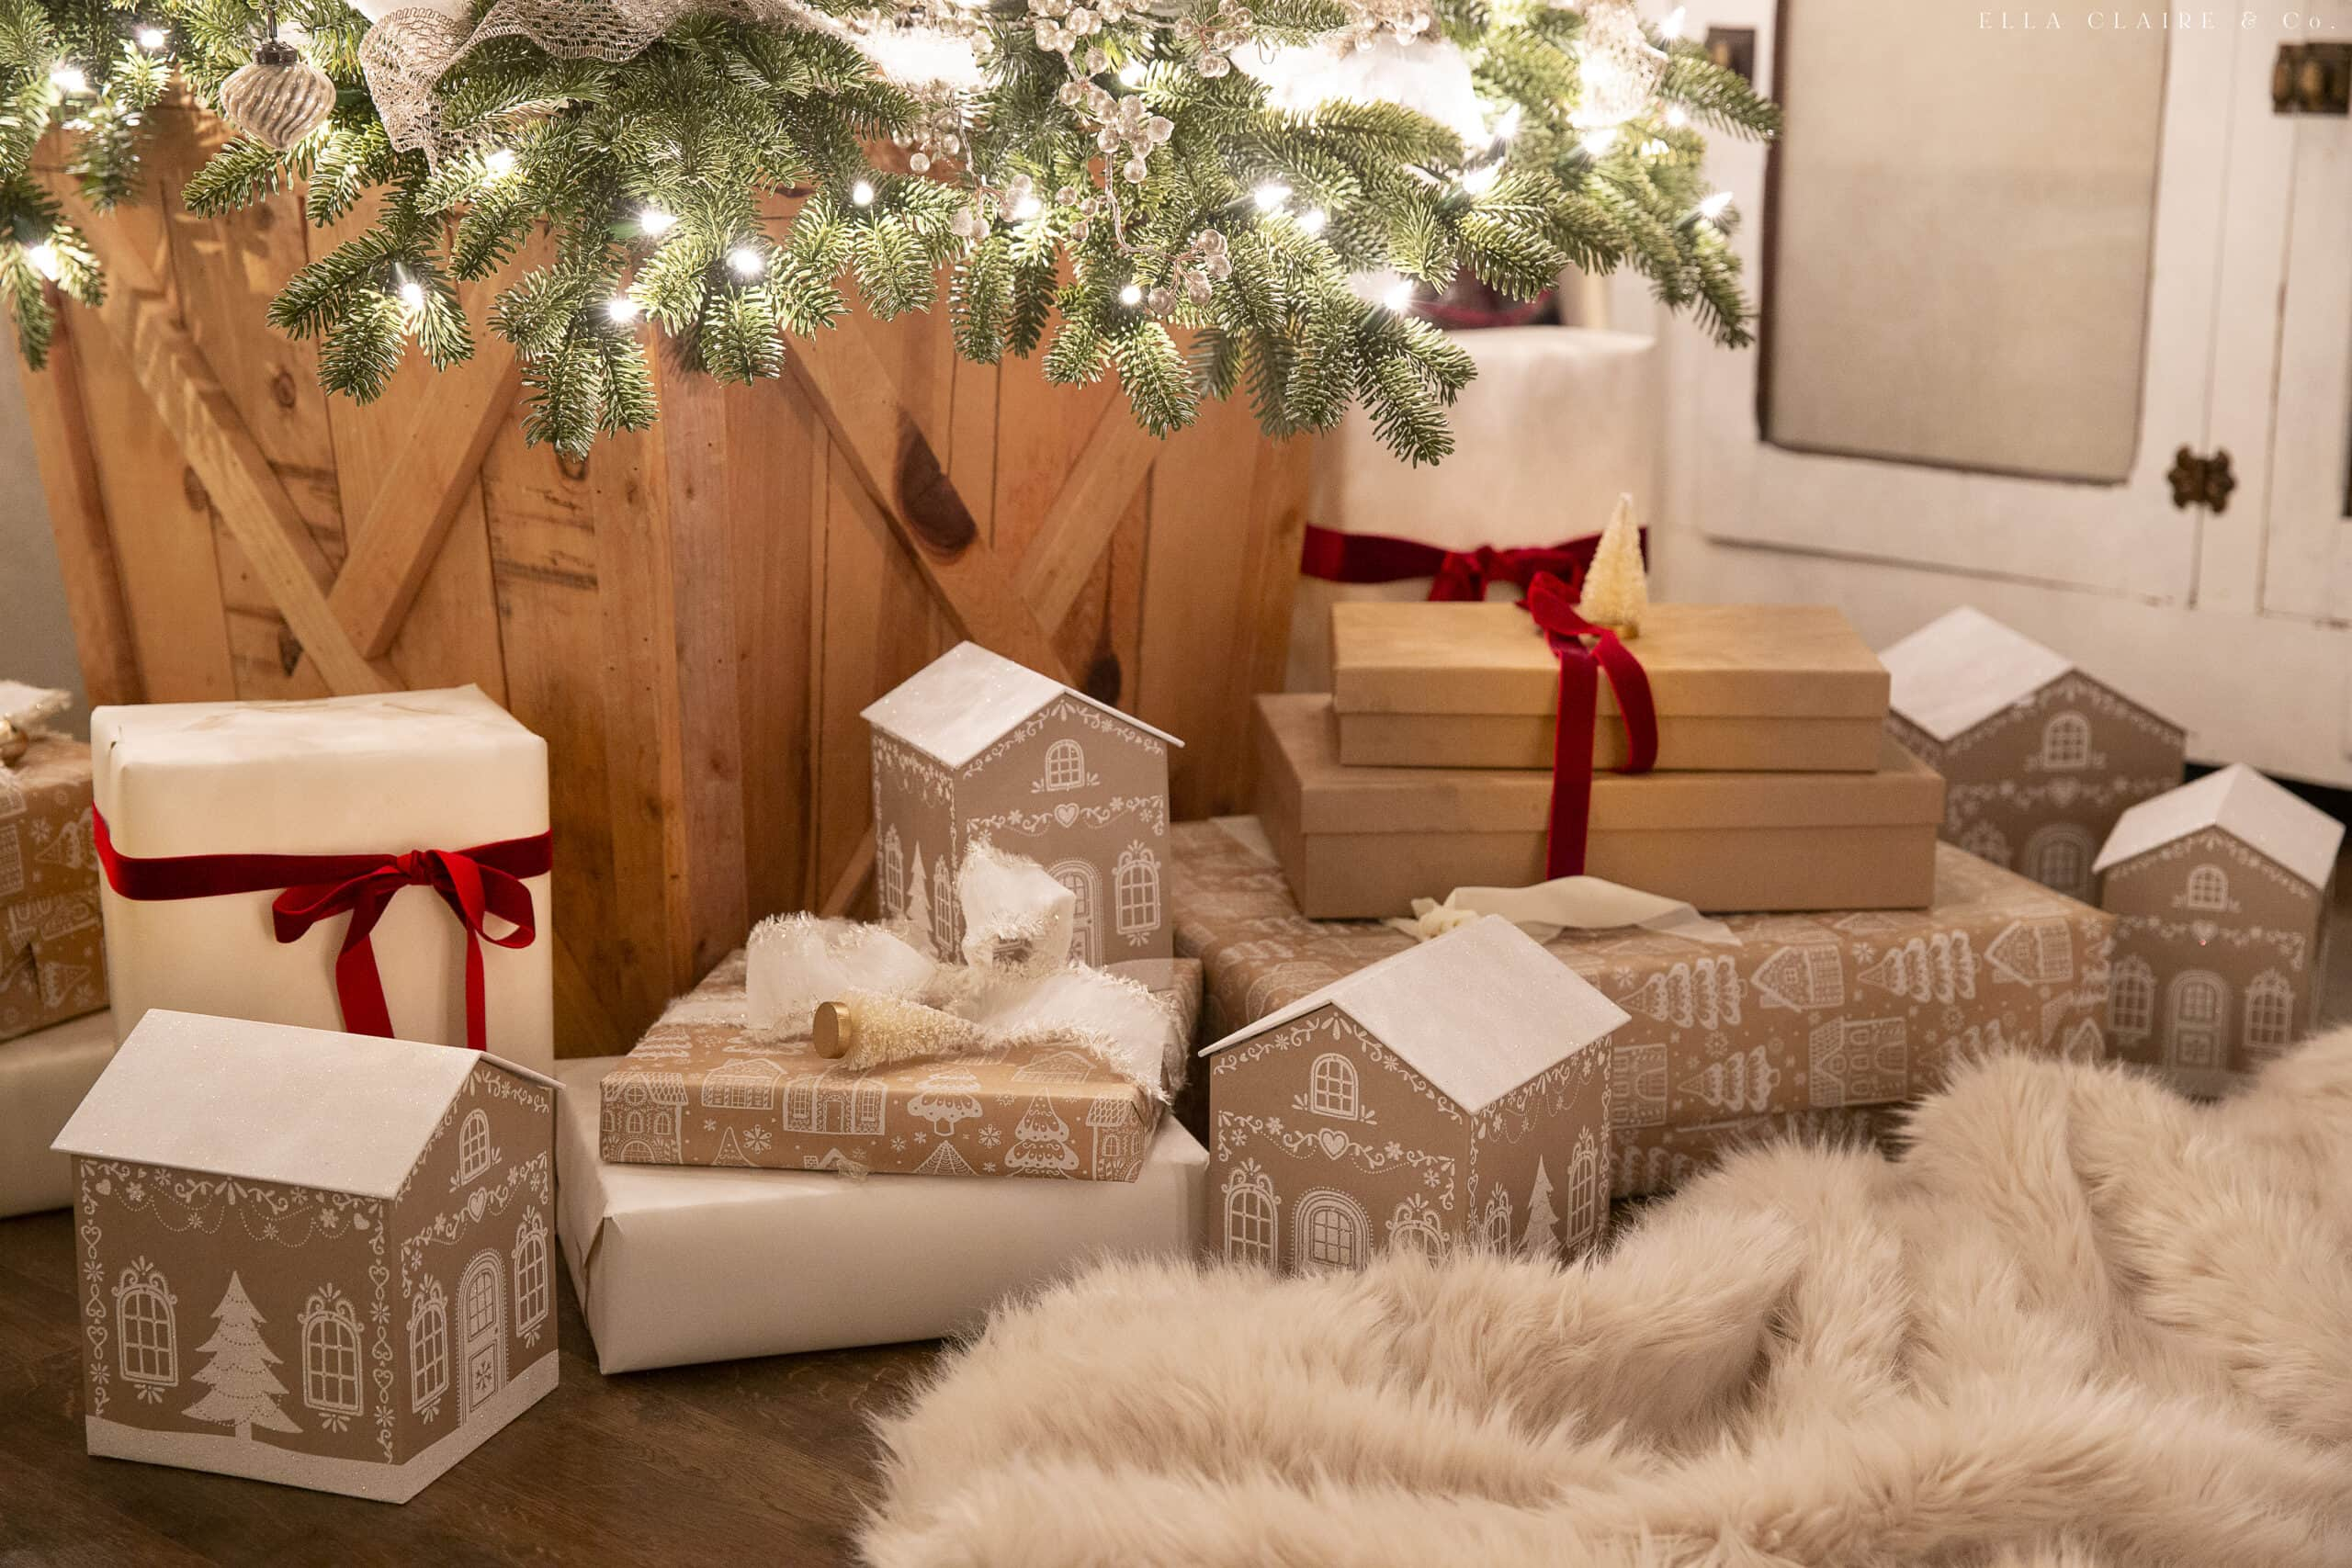 gingerbread gift boxes and wrapping paper